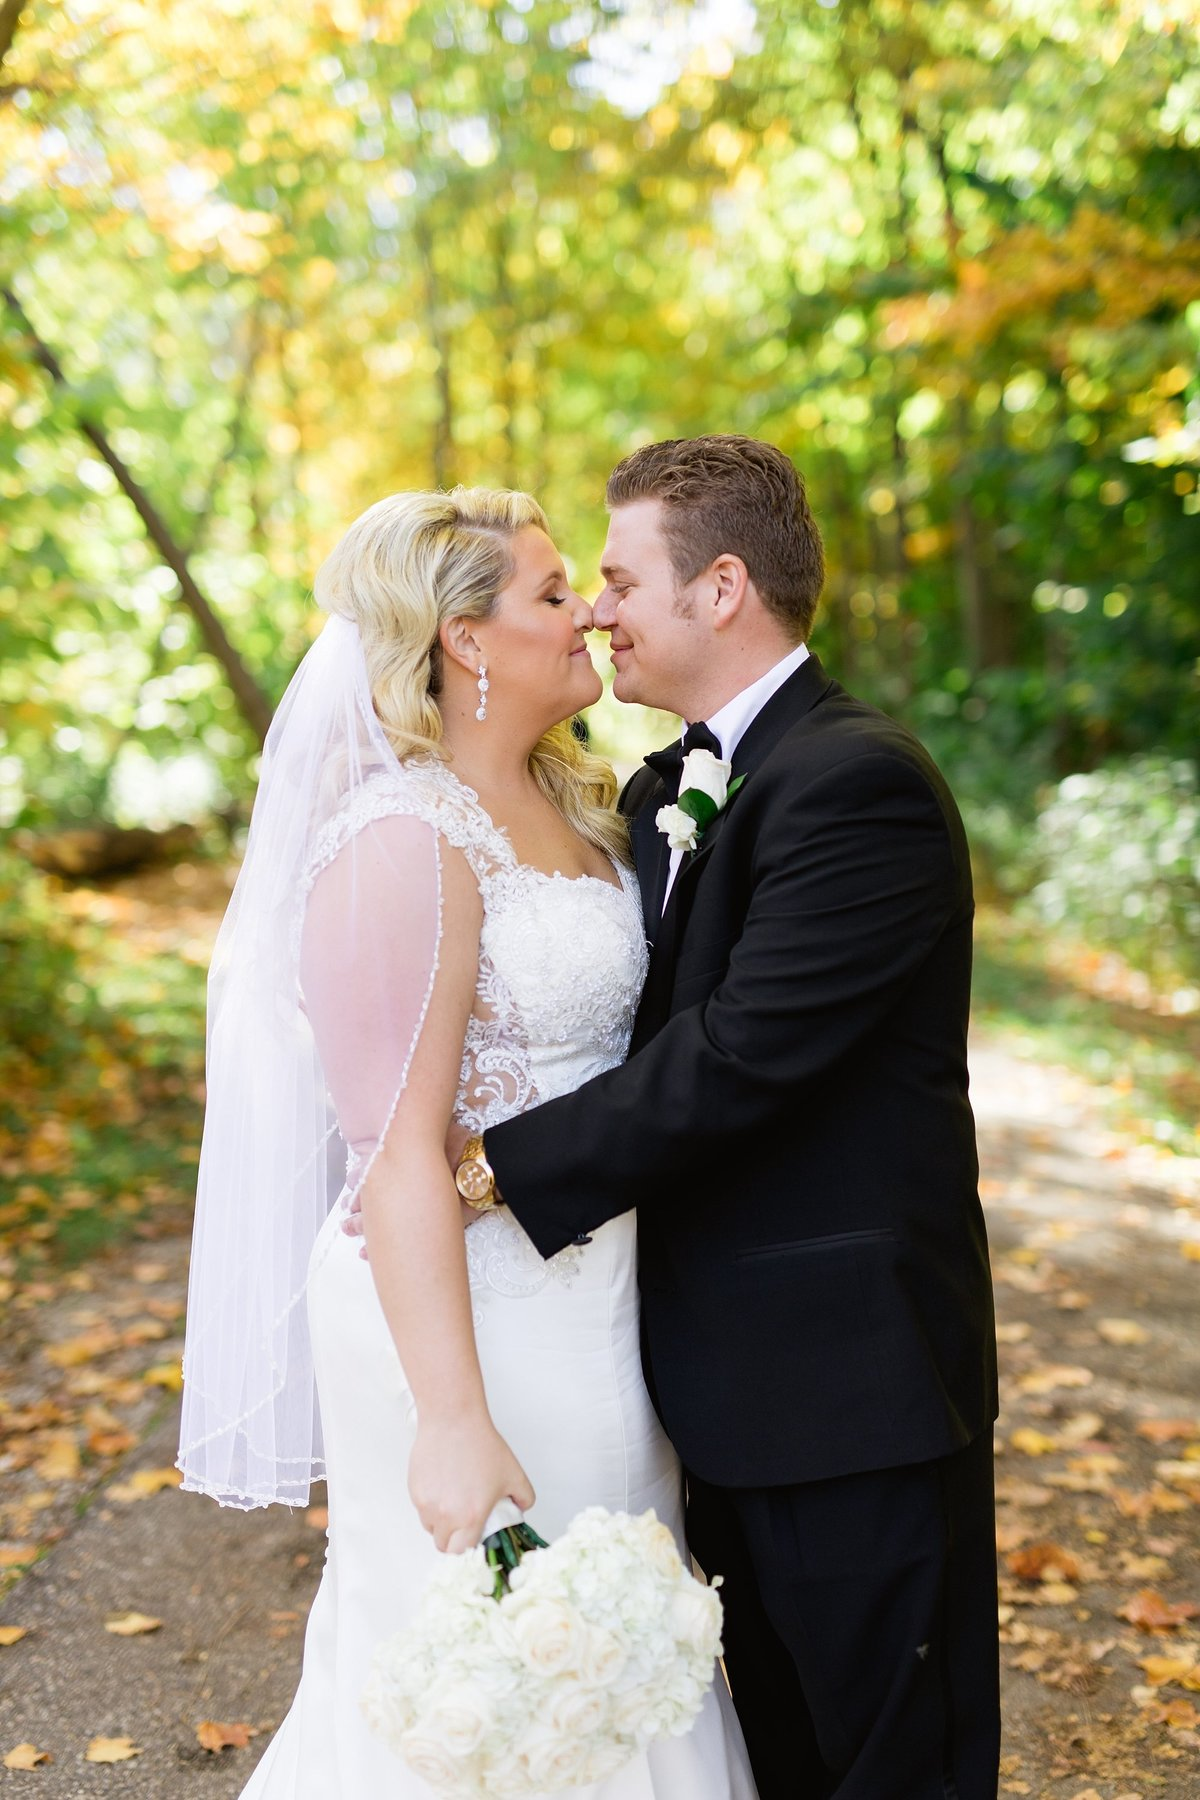 Carly-Johnny-Elegant-Fall-Michigan-Wedding-Breanne-Rochelle-Photography54